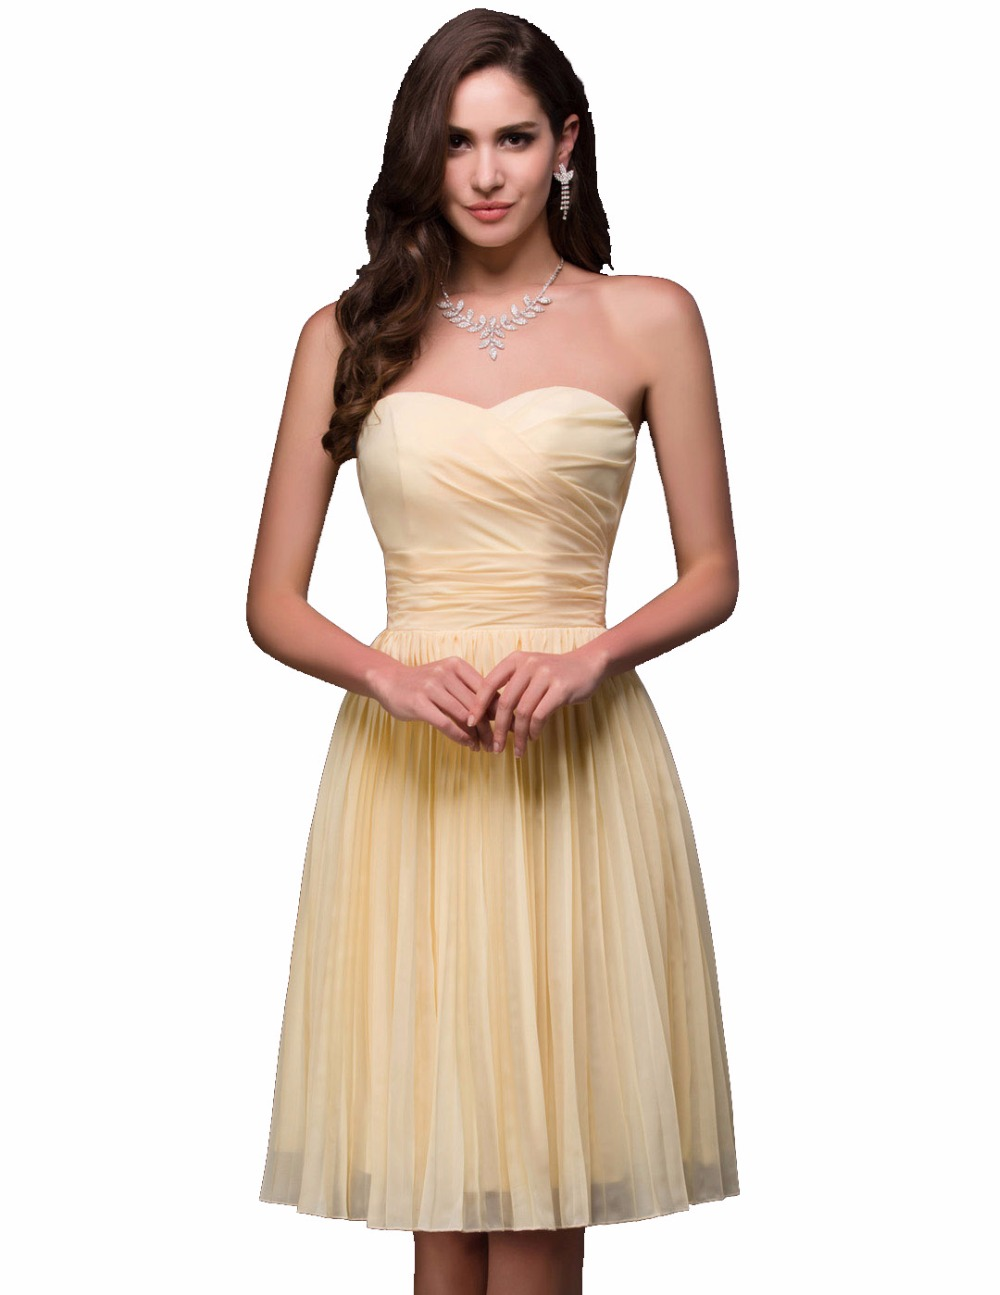 Cheap bridesmaid dresses under 50 2016 grace karin strapless cheap bridesmaid dresses under 50 2016 grace karin strapless yellow short formal dress knee length chiffon party gowns vestidos in bridesmaid dresses from ombrellifo Gallery